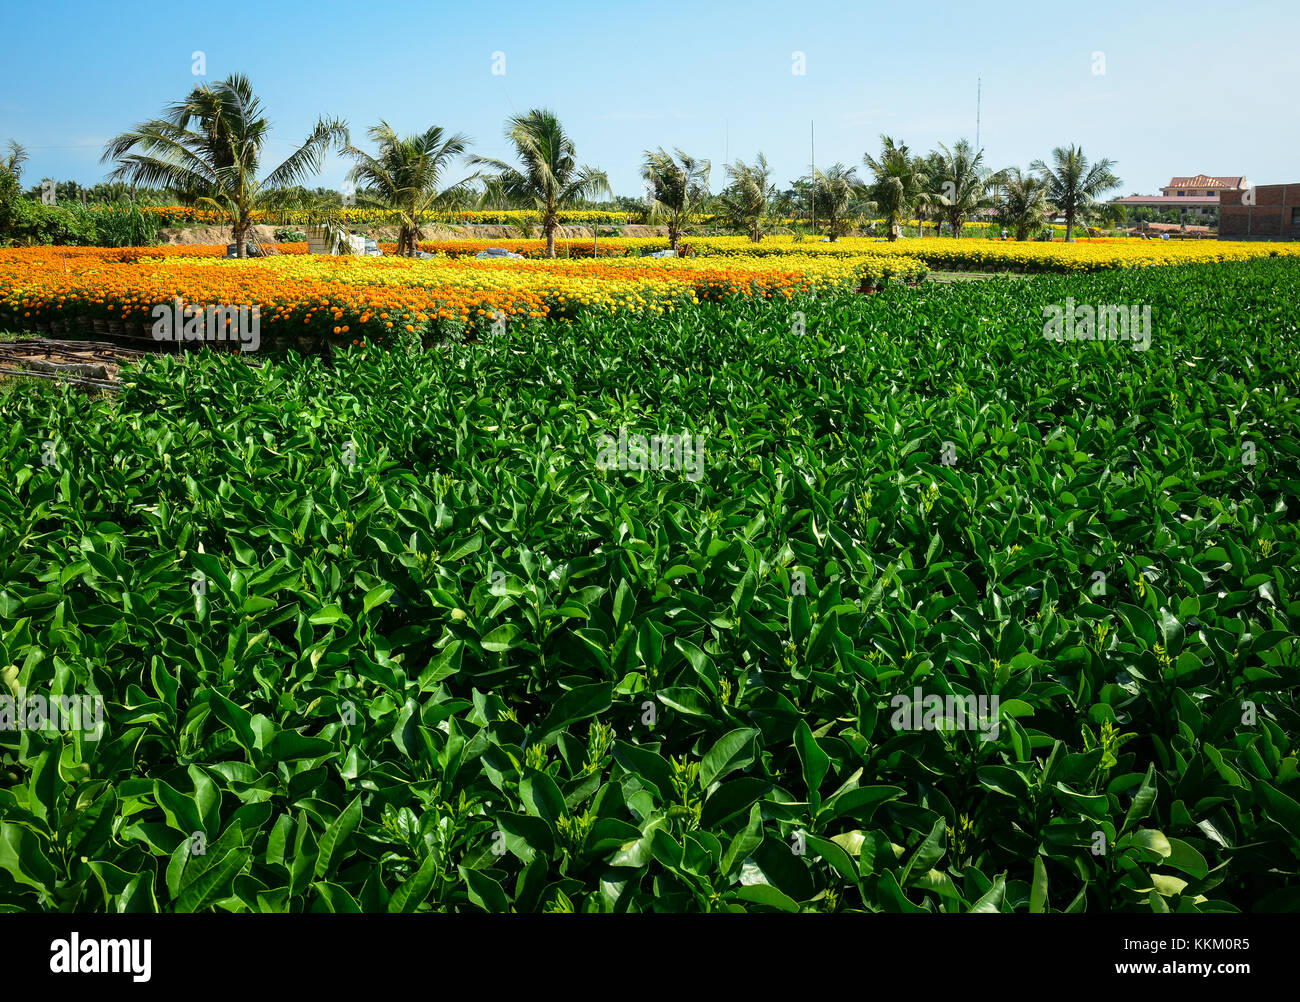 Vegetable plantation at sunny day in Sa Dec, Vietnam. Sa Dec is a river port and agricultural and industrial trading - Stock Image